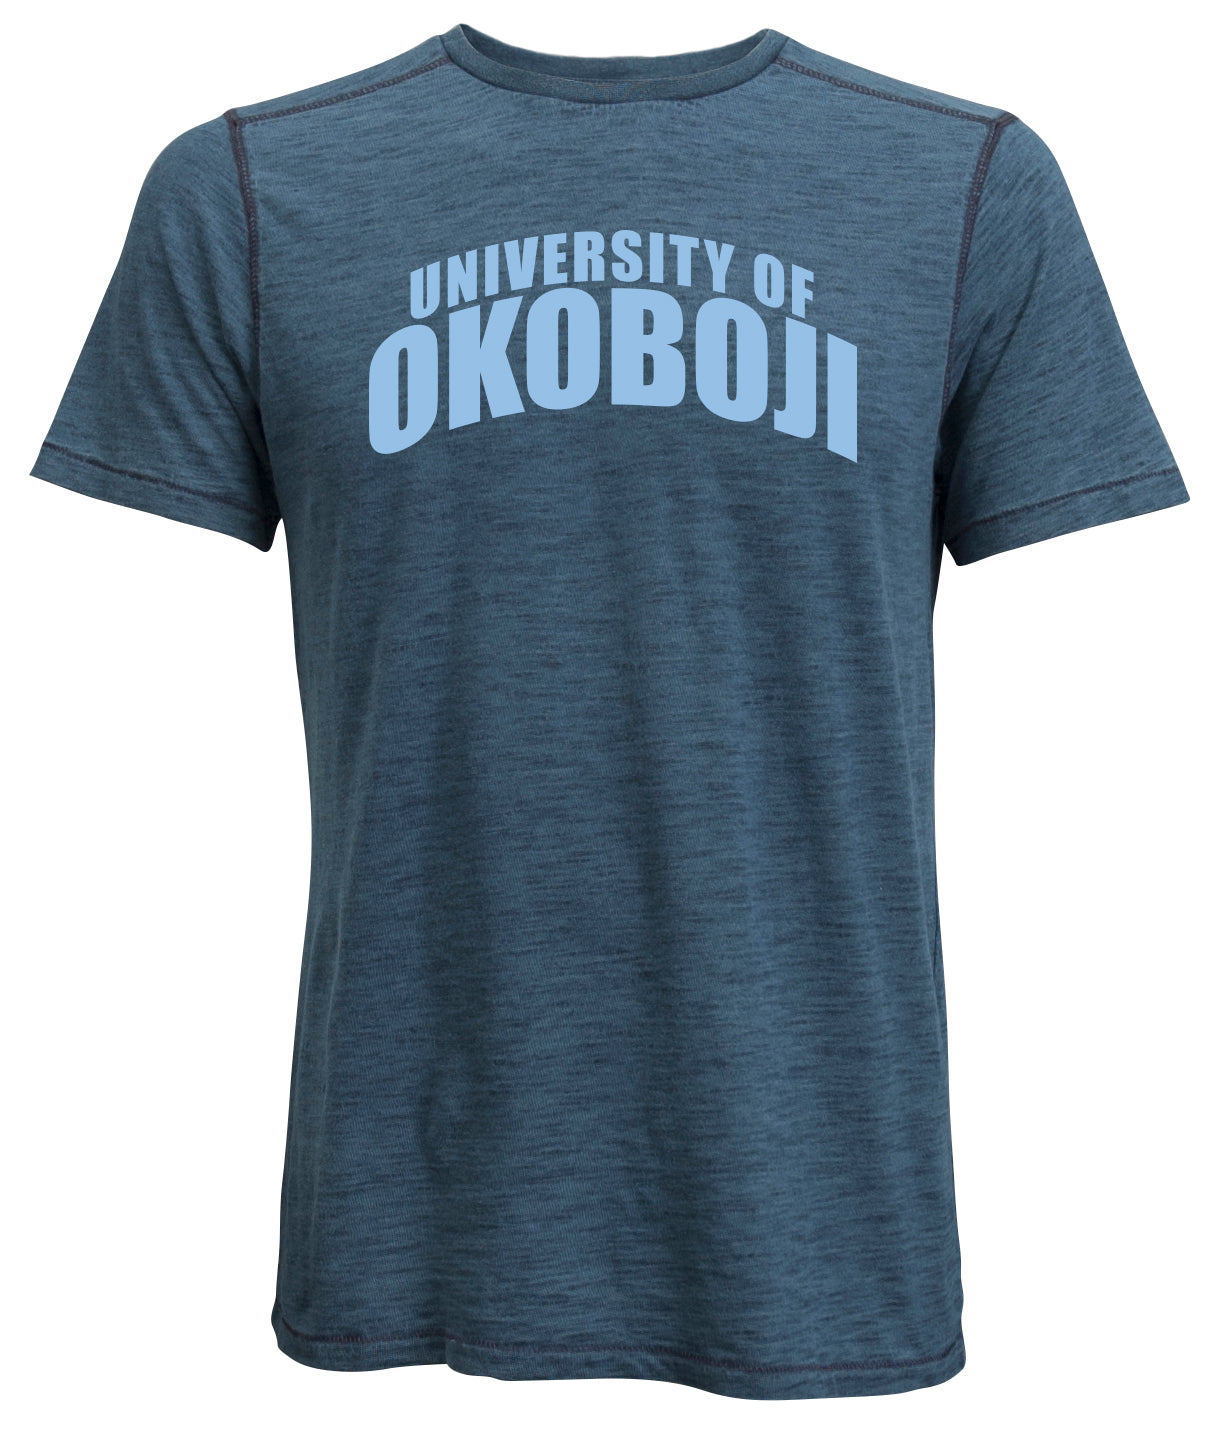 University of Okoboji Romeo Tee - Heathered Navy